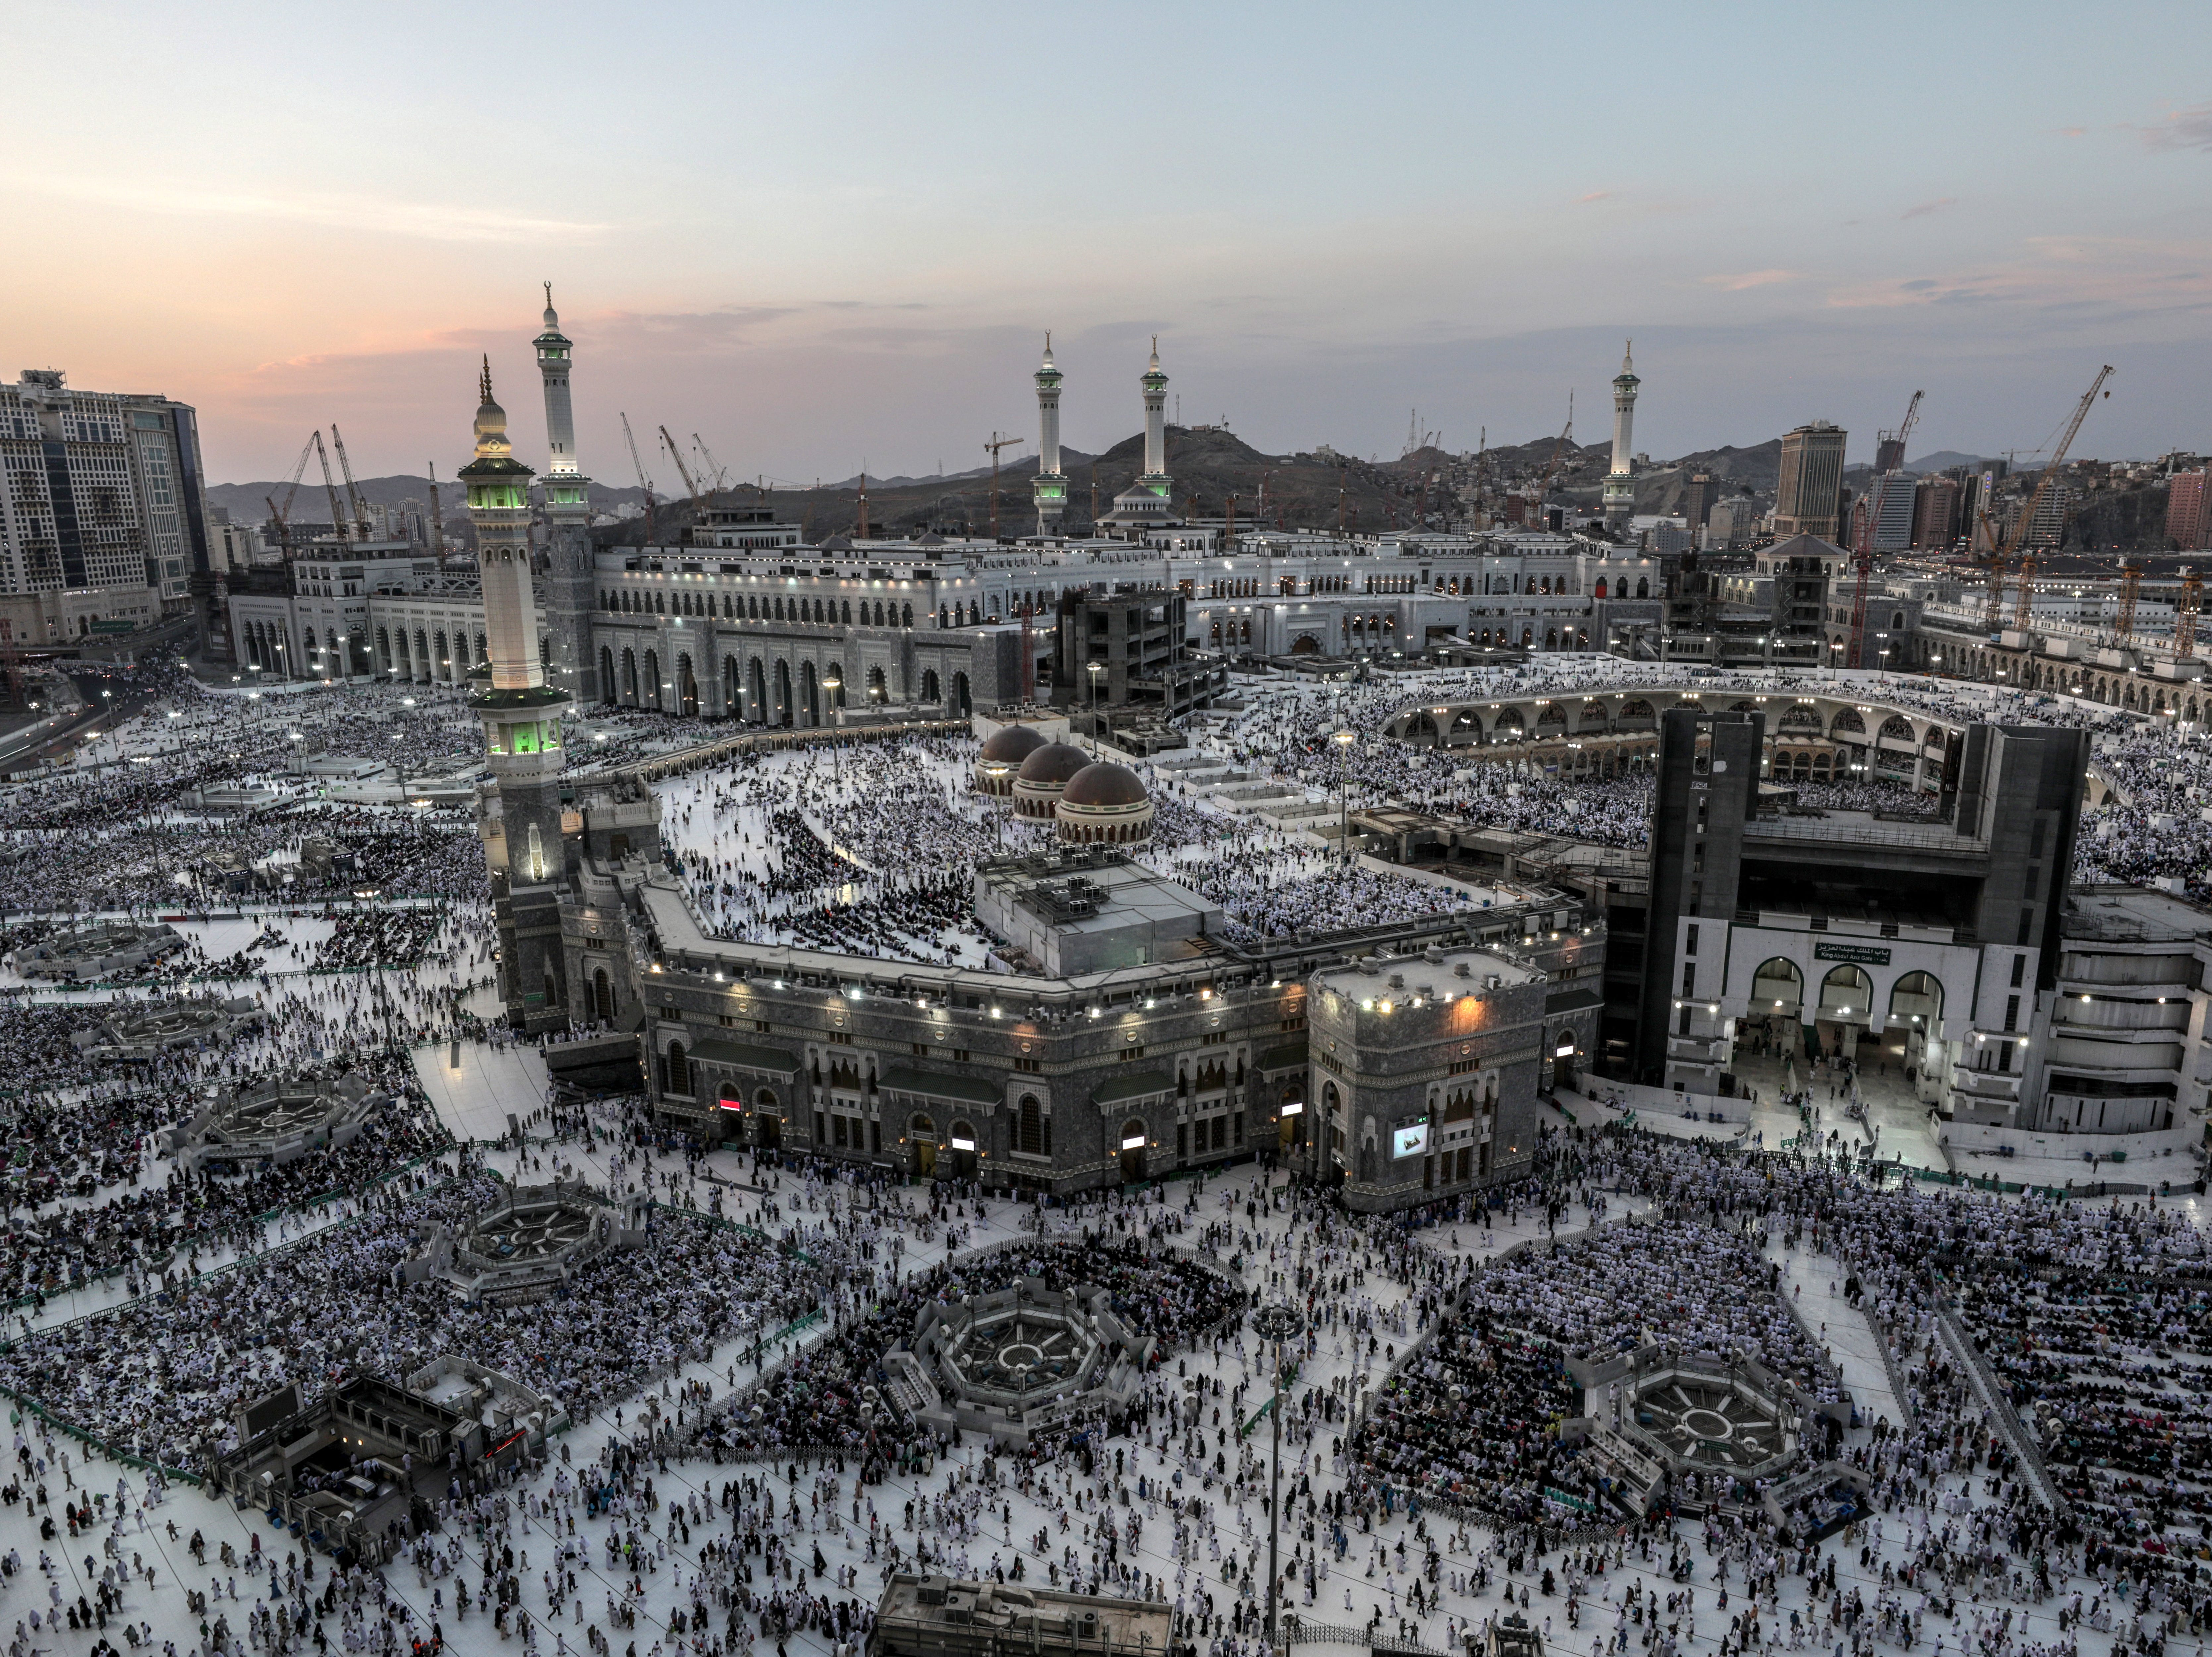 Aug. 18, 2018: Muslim pilgrims pray around the holy Kaaba at the Grand Mosque in Mecca, Saudi Arabia. Around 2.5 million Muslims are expected to attend this year's Hajj pilgrimage, which is highlighted by the Day of Arafah, one day prior to Eid al-Adha. Eid al-Adha is the holiest of the two Muslims holidays celebrated each year, it marks the yearly Muslim pilgrimage (Hajj) to visit Mecca, the holiest place in Islam.